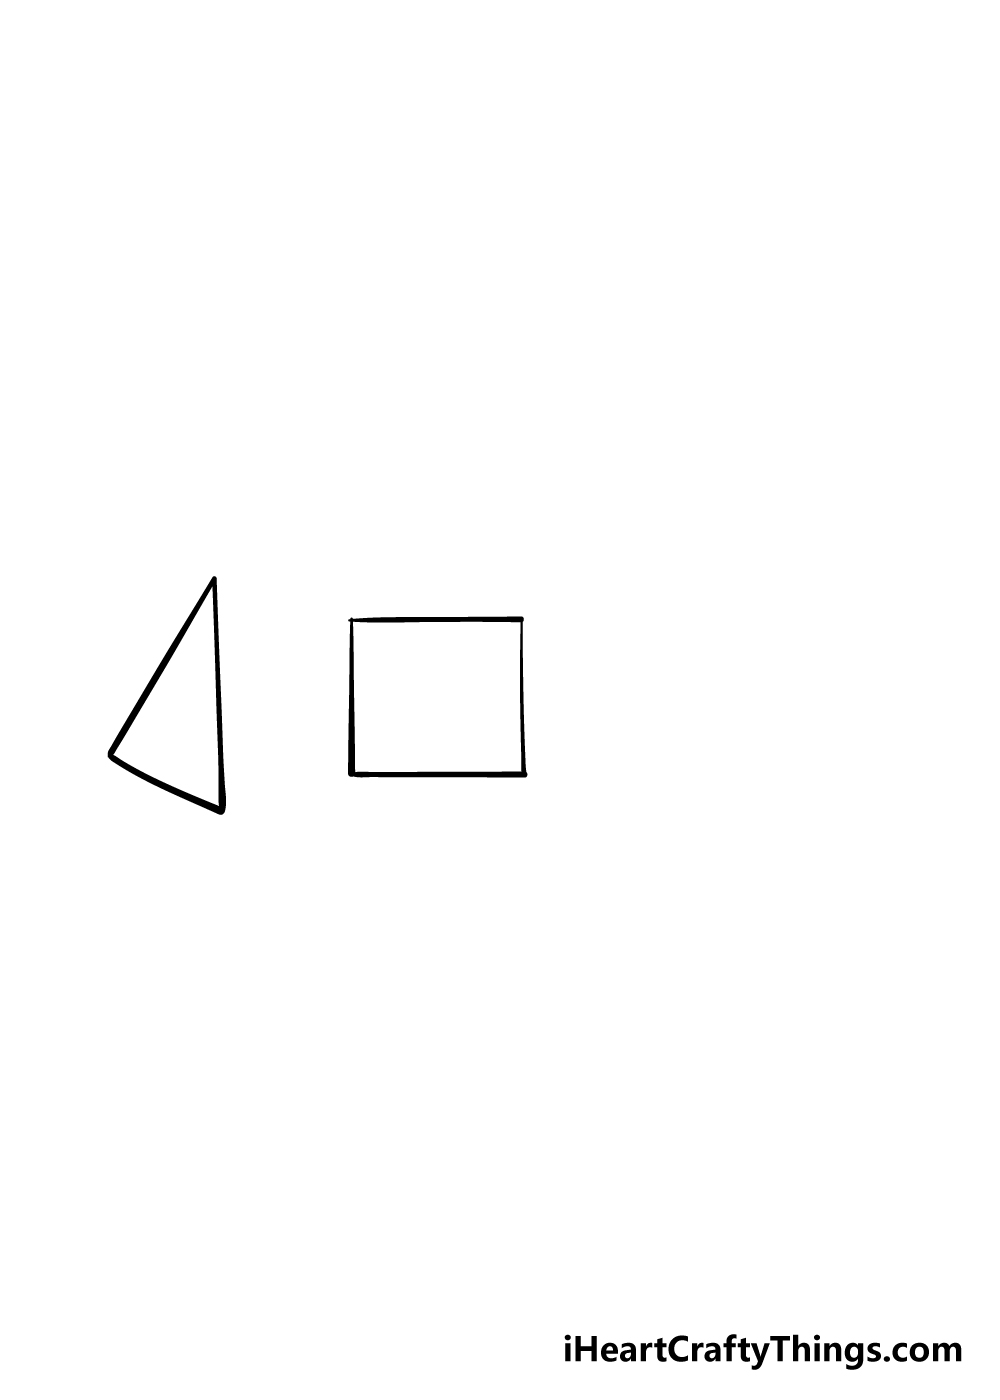 3D shapes drawing step 2